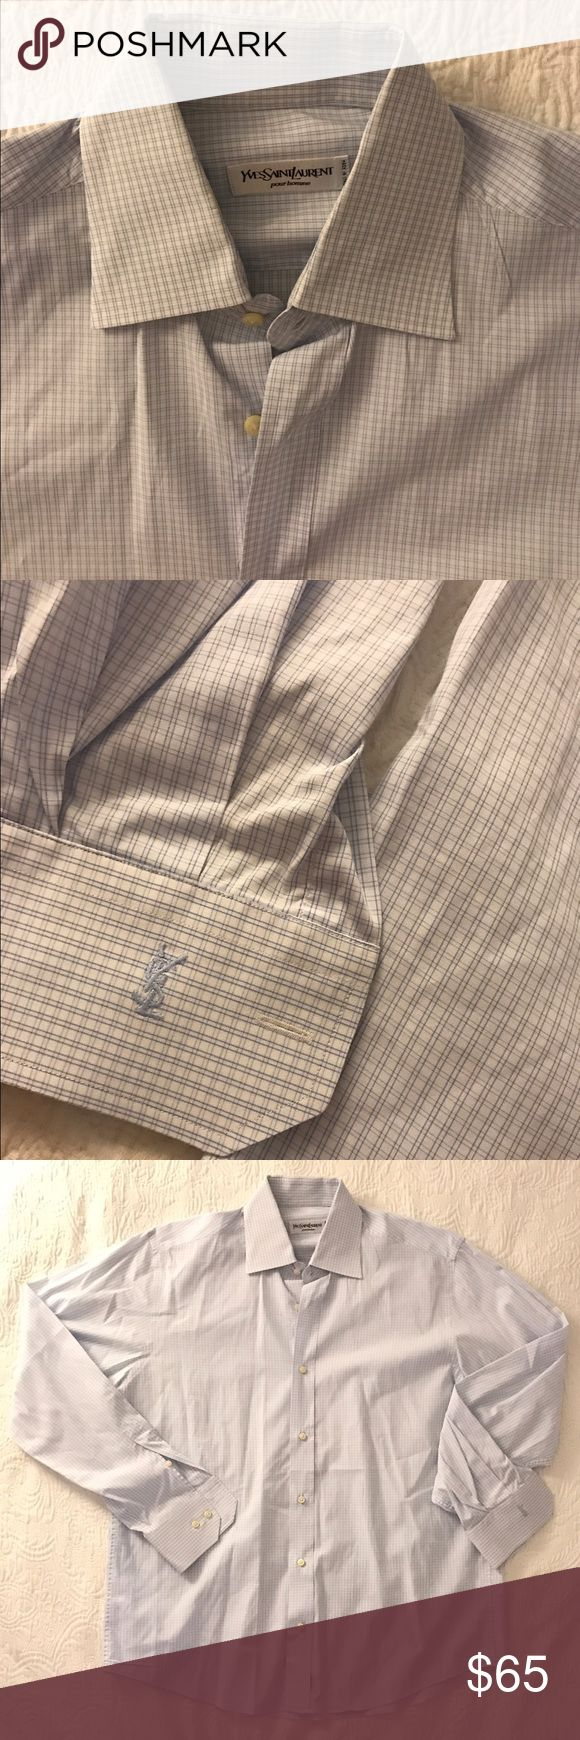 Yves Saint Laurent Men's Light Blue Shirt Worn just once, like brand new, made in Italy. Size 42 / 16.5 Retail $295 + Tax Yves Saint Laurent Shirts Dress Shirts